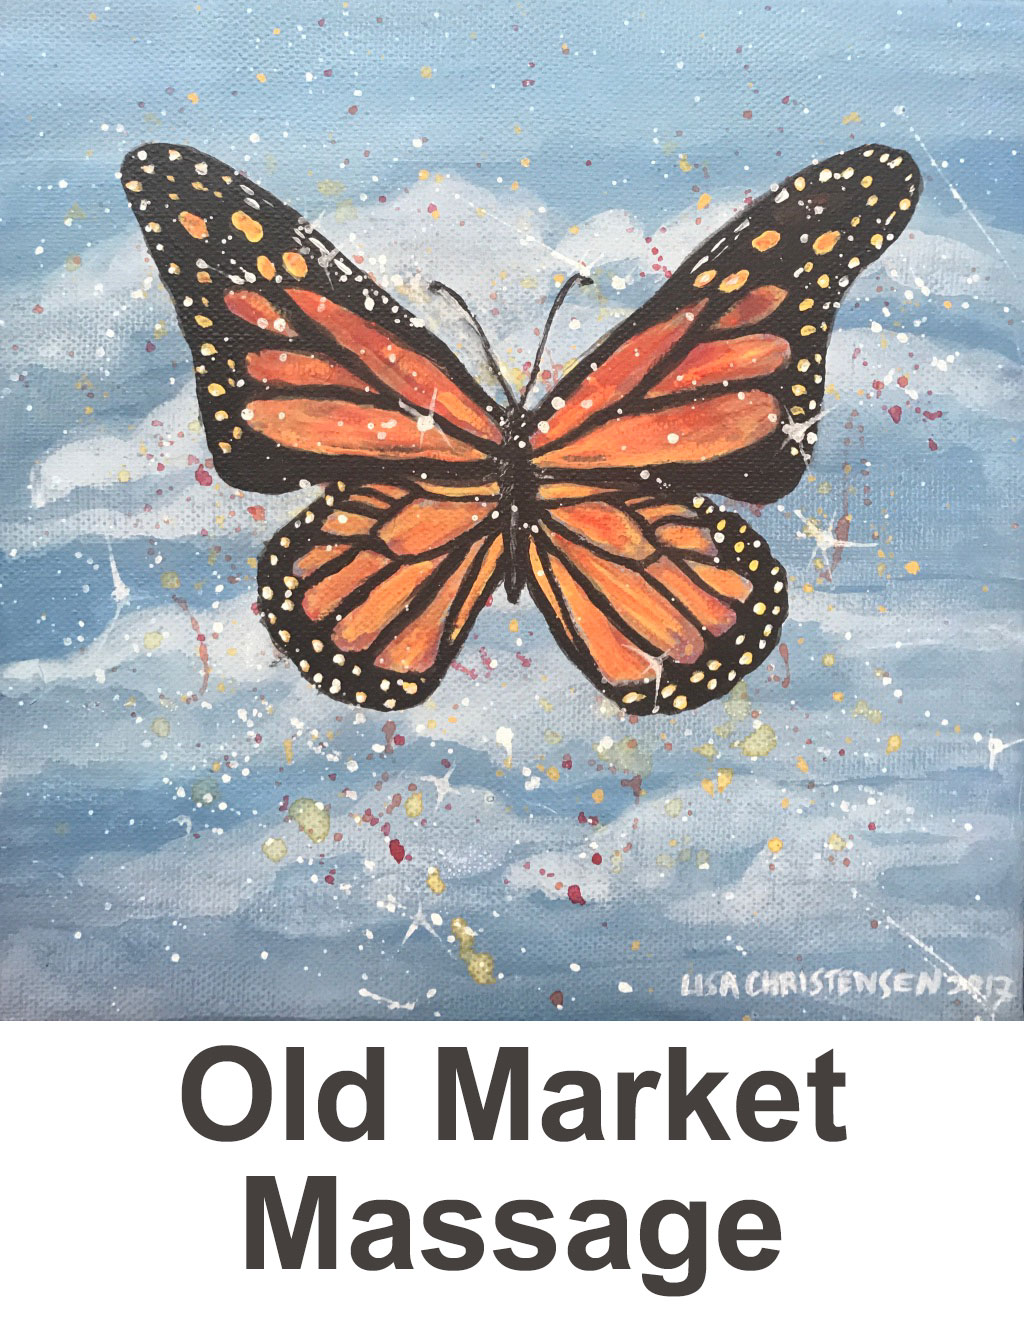 Old Market Massage